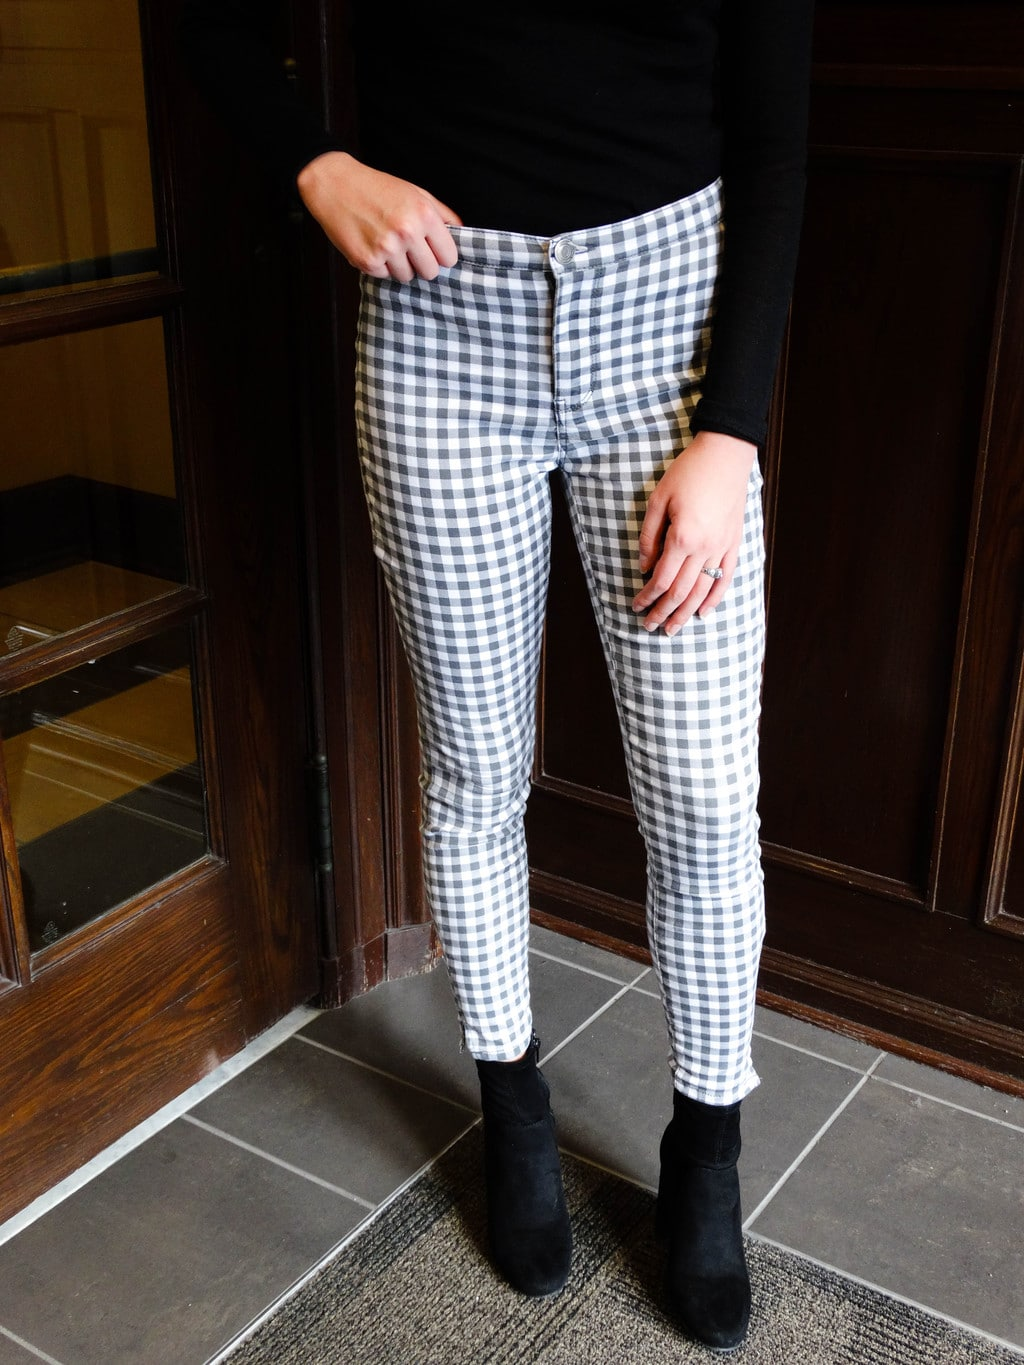 These form-hugging grey and white high-waisted checkered pants make a statement.